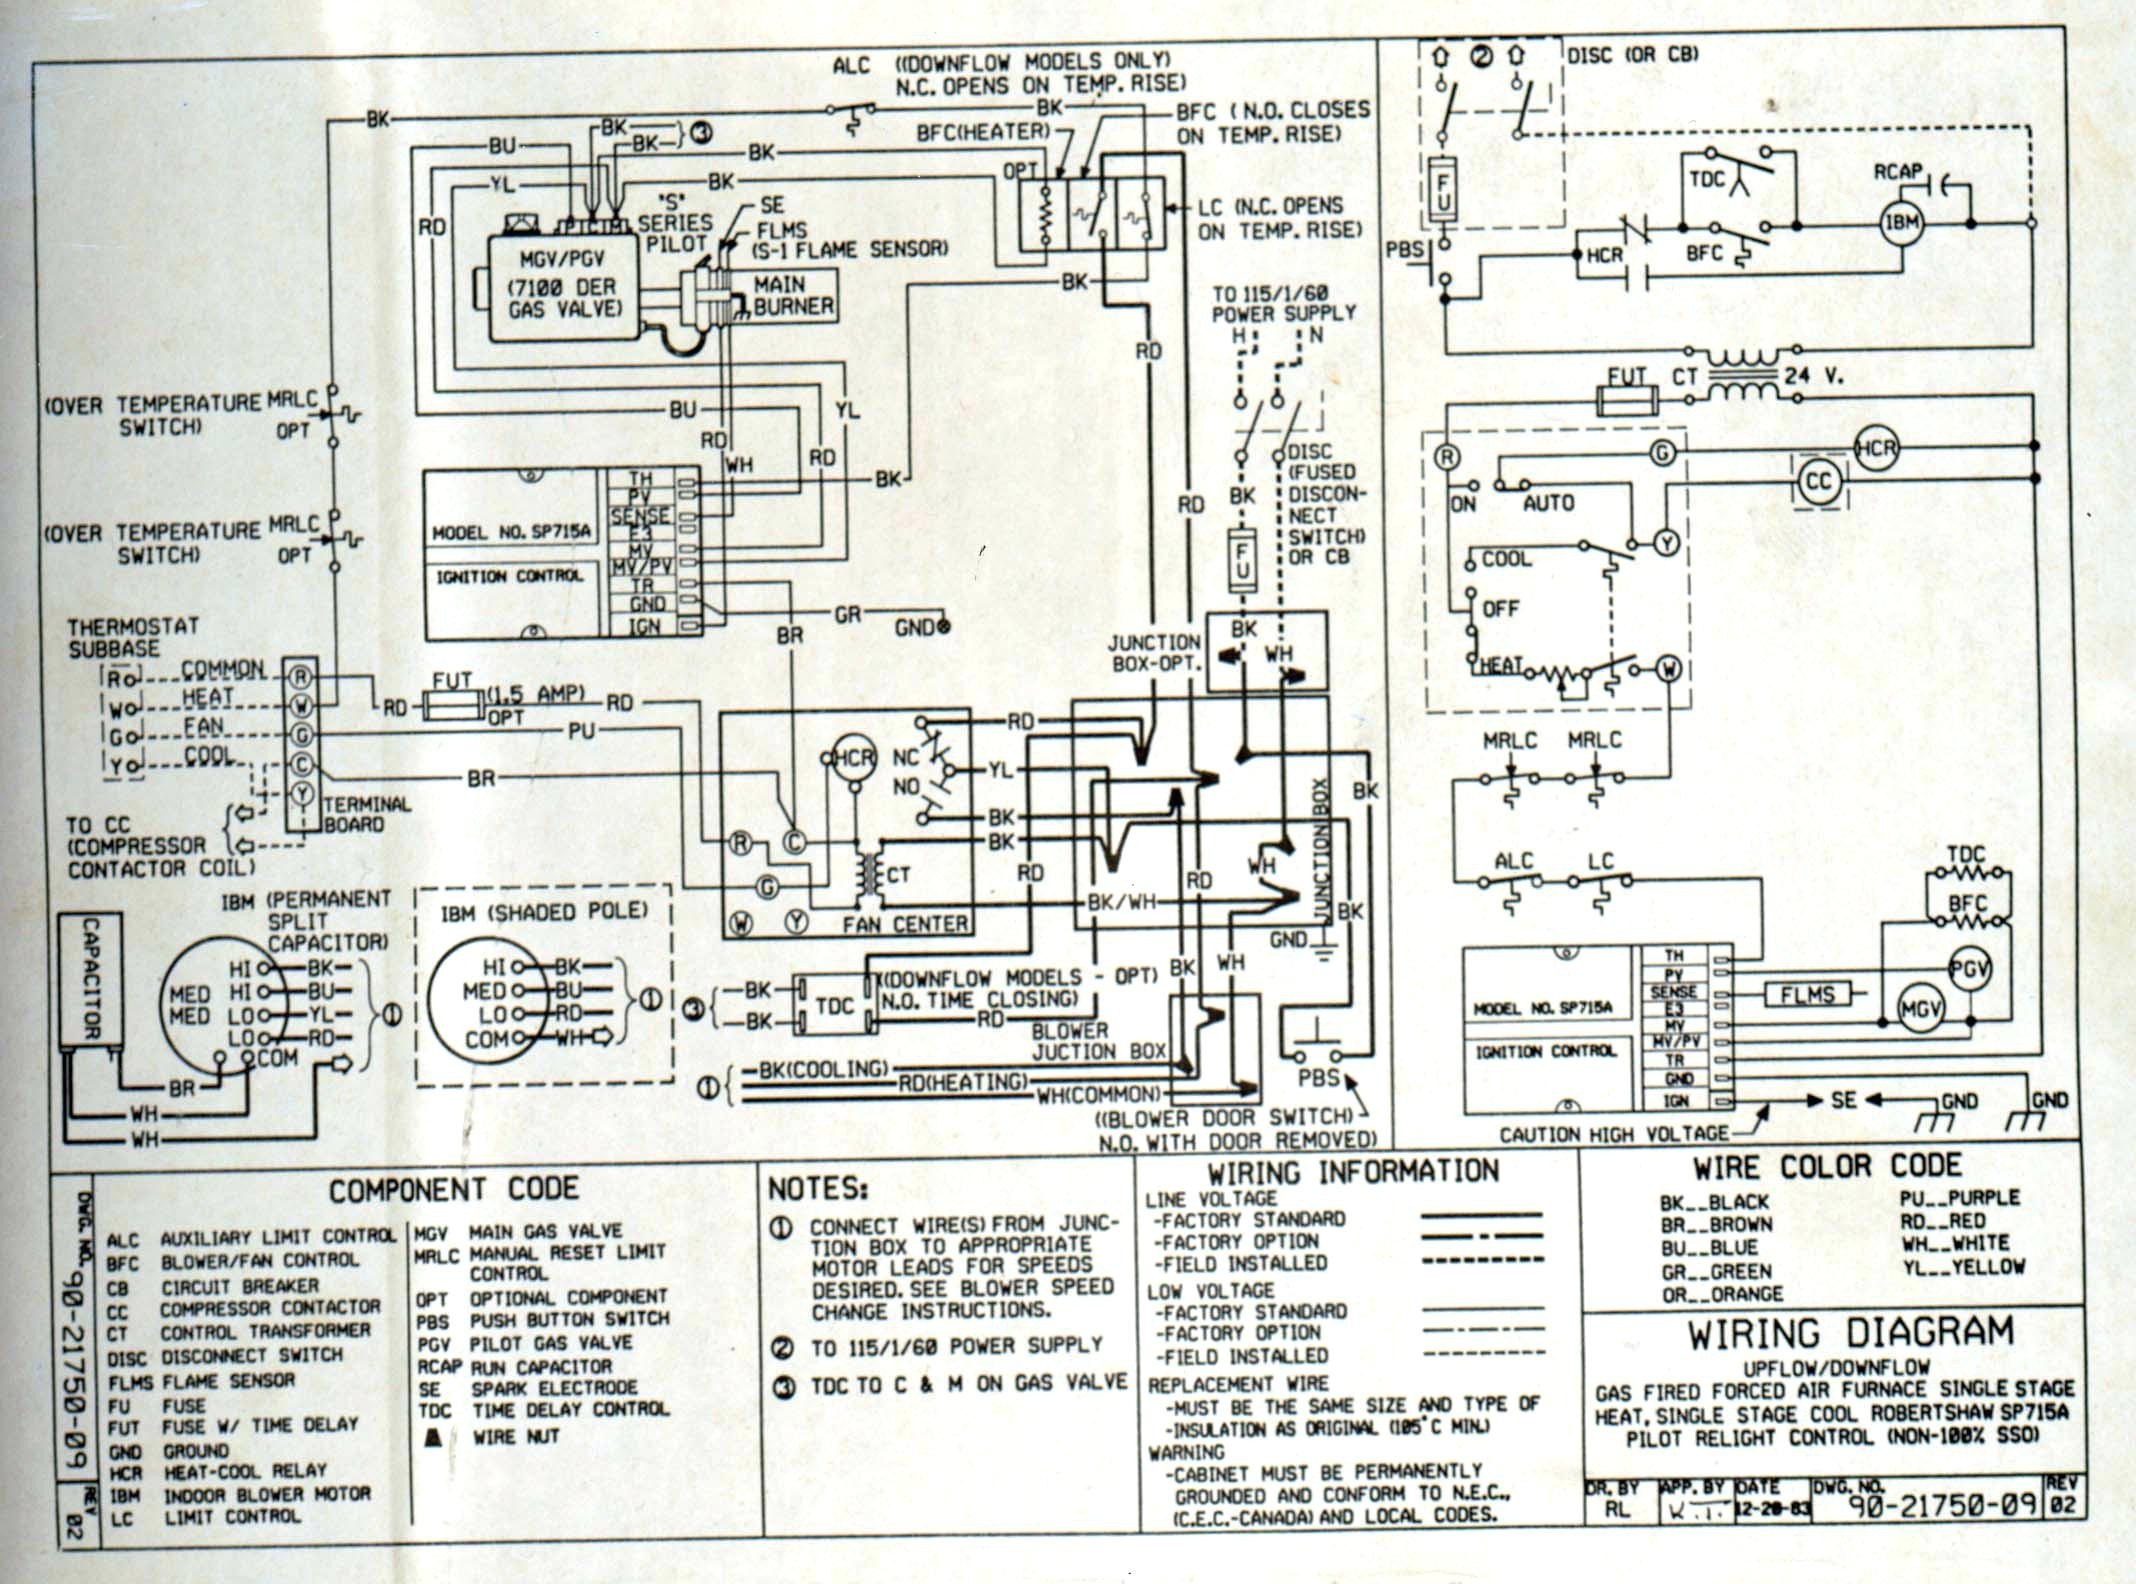 payne package unit wiring diagram Collection-Package Air Conditioning Unit Wiring Diagram Save Carrier Electric Furnace Wiring Diagrams for Payne Wiring Diagram 15-b